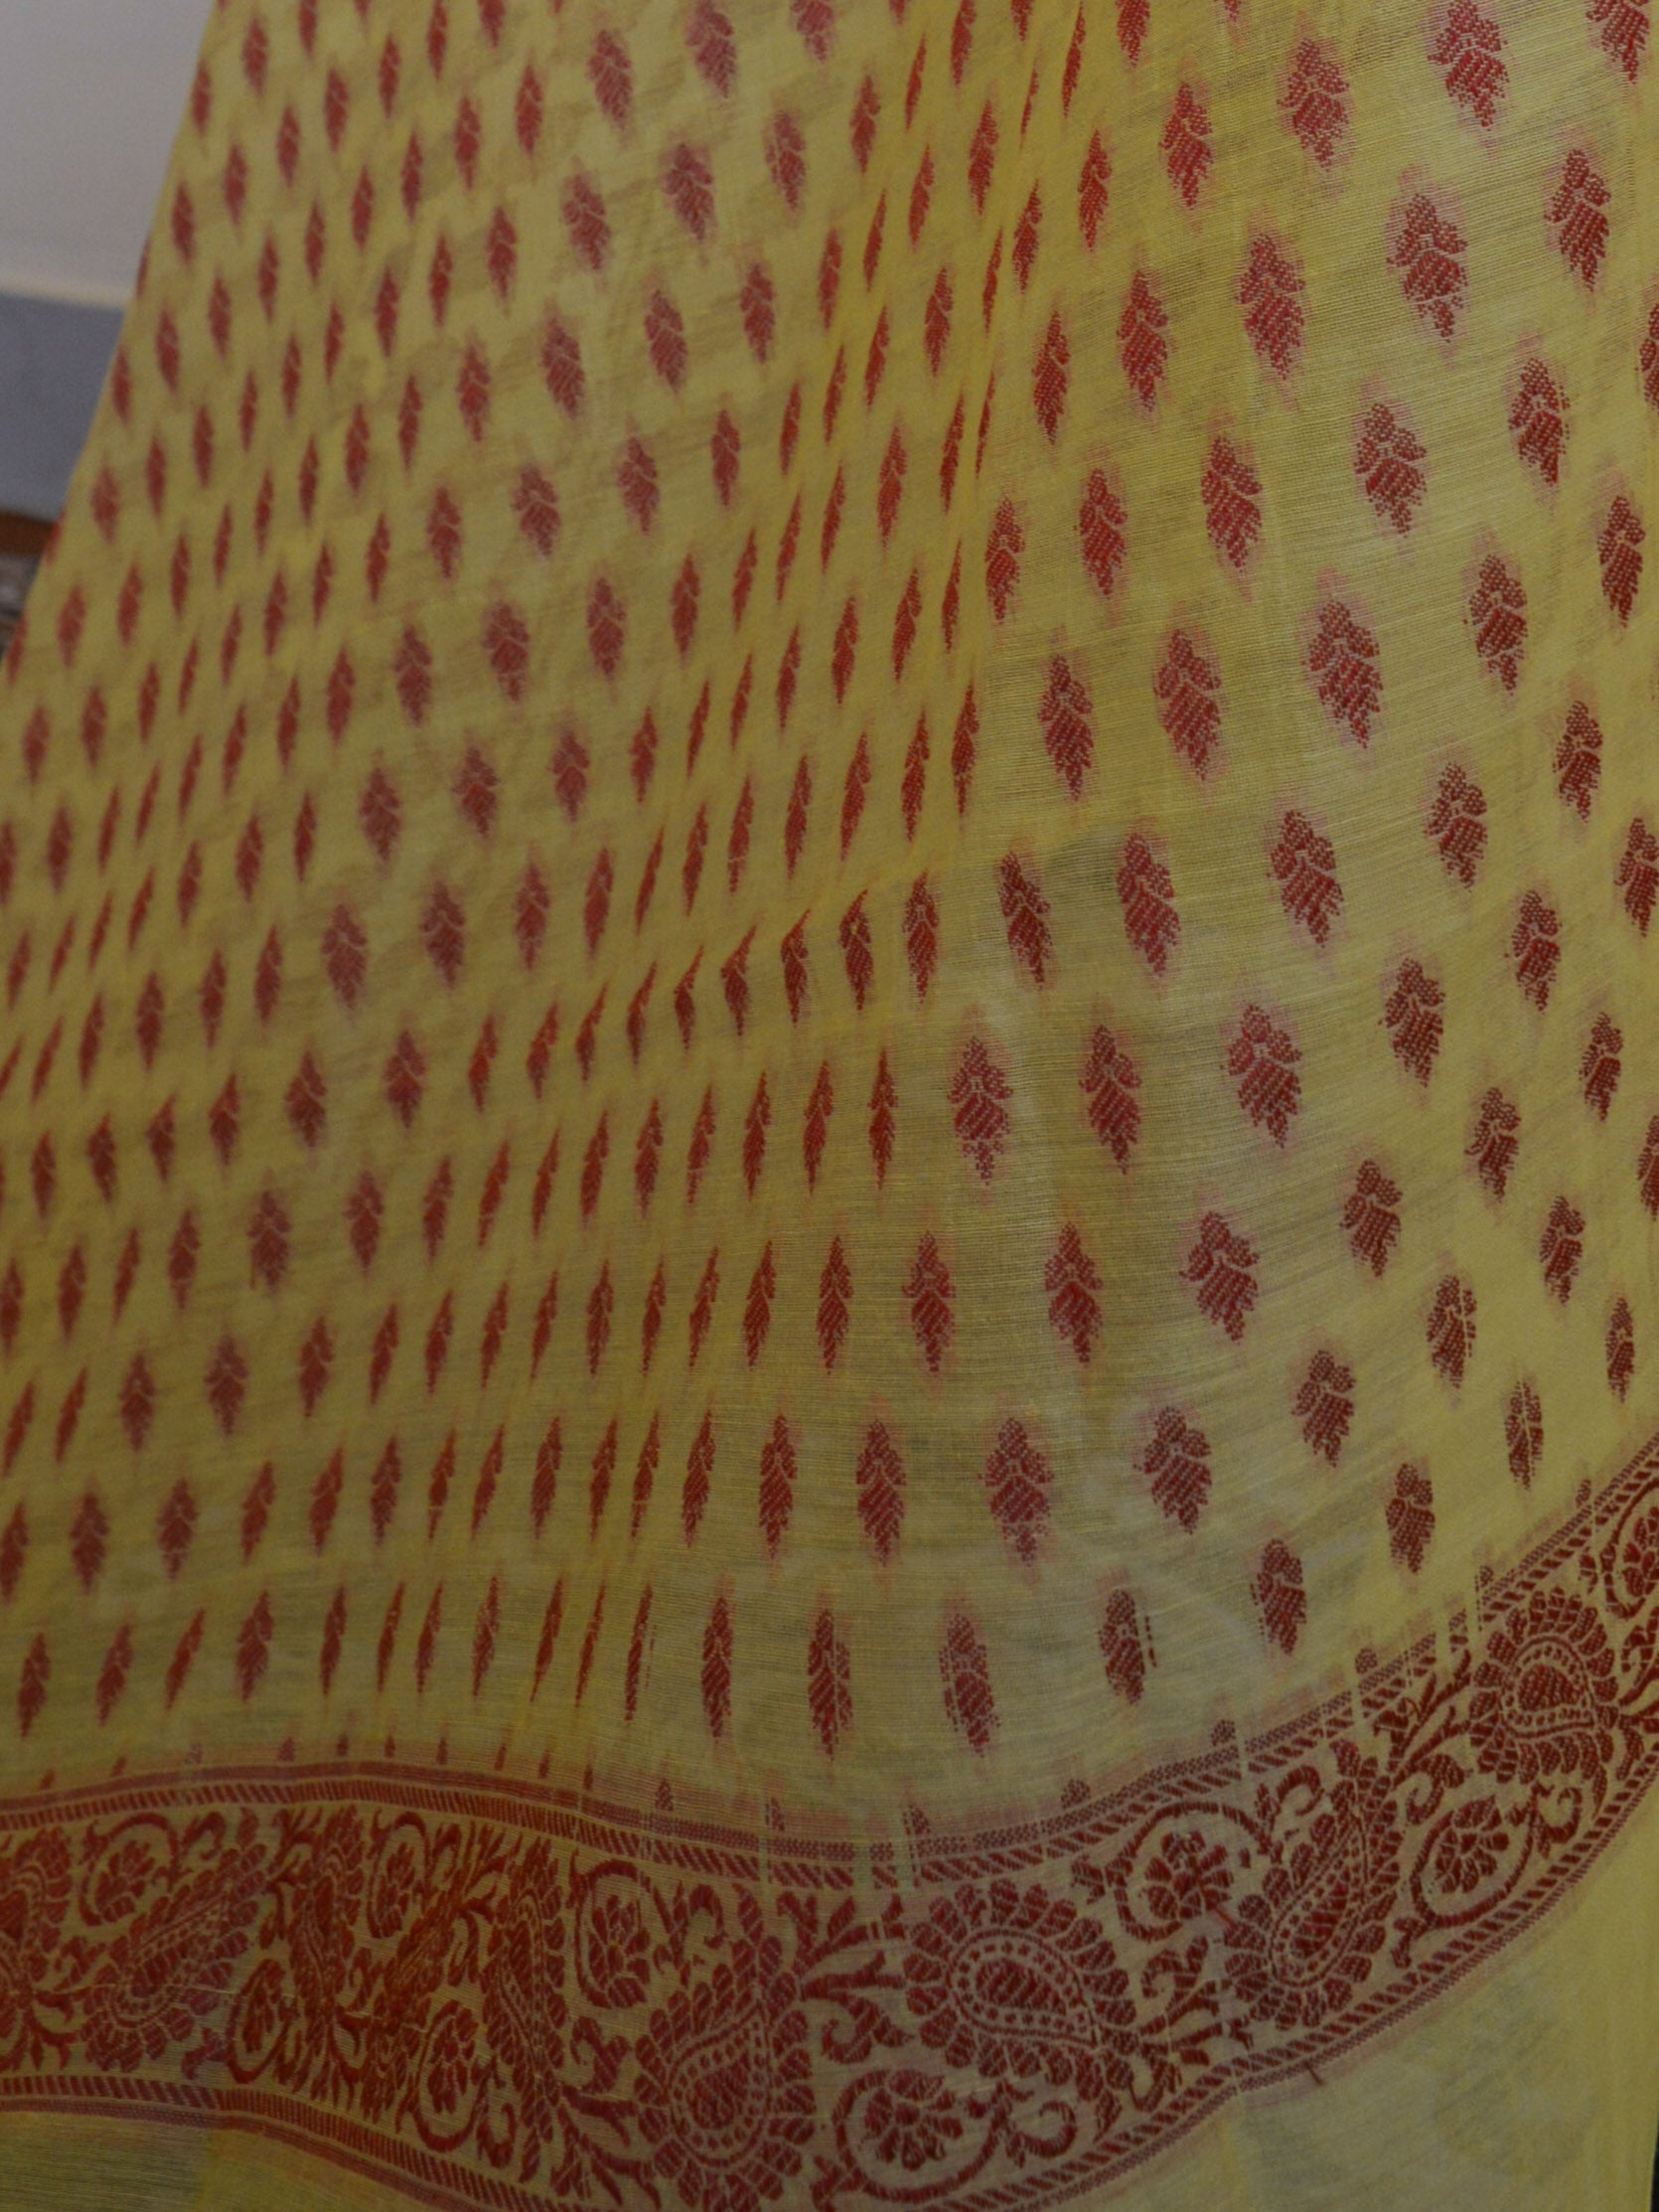 Banarasee Salwar Kameez Cotton Silk Woven Resham Buti Fabric & Dupatta-Yellow